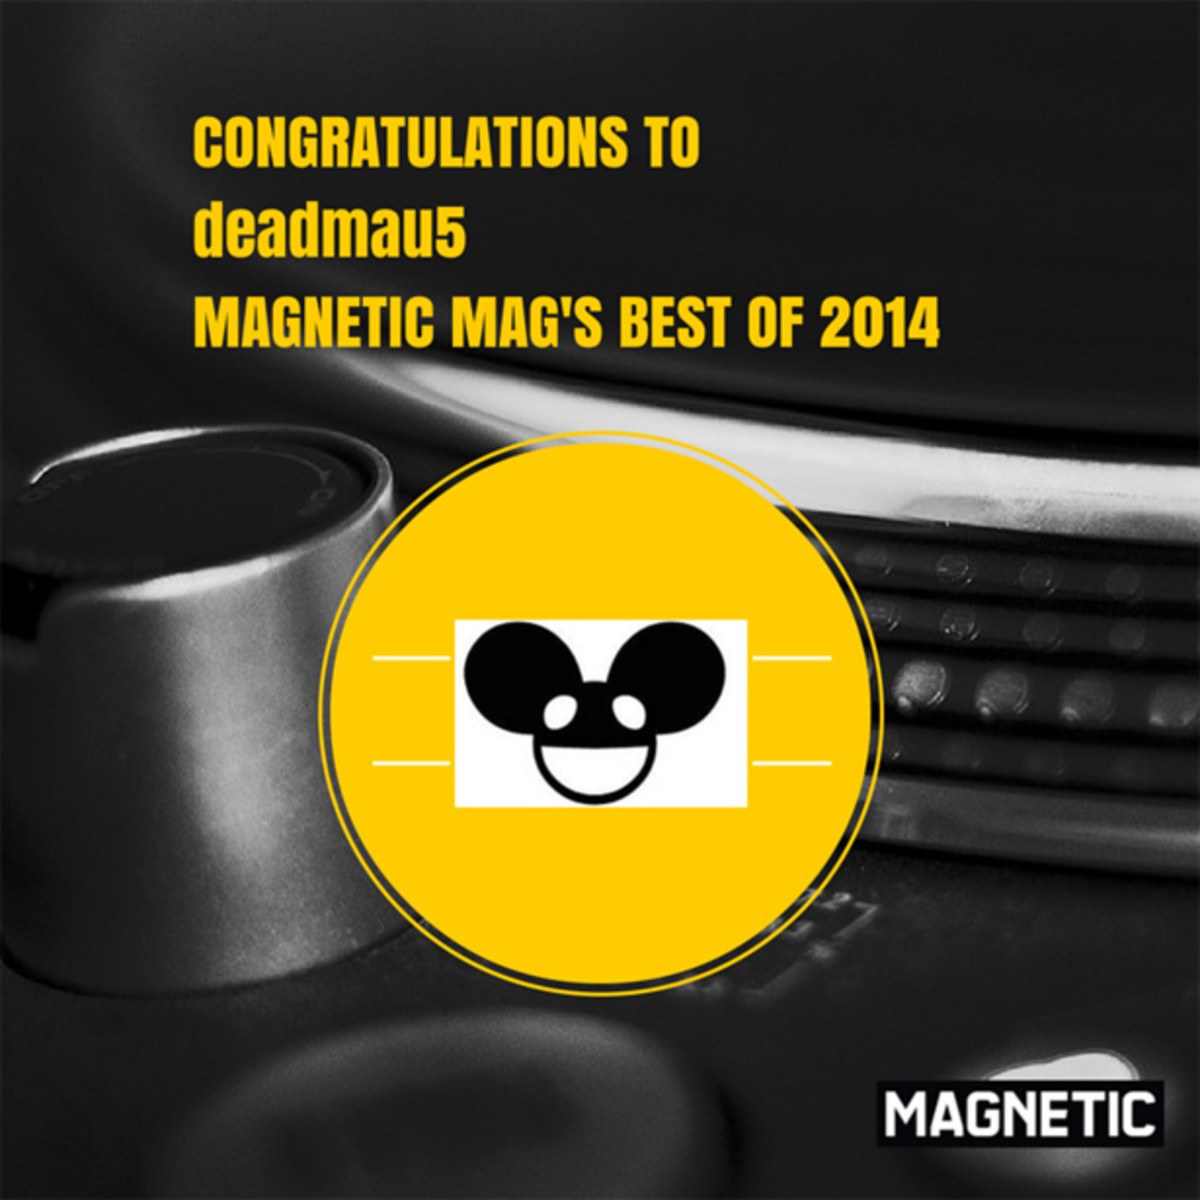 Magnetic Magazine's Winner Of The Best Song 2014